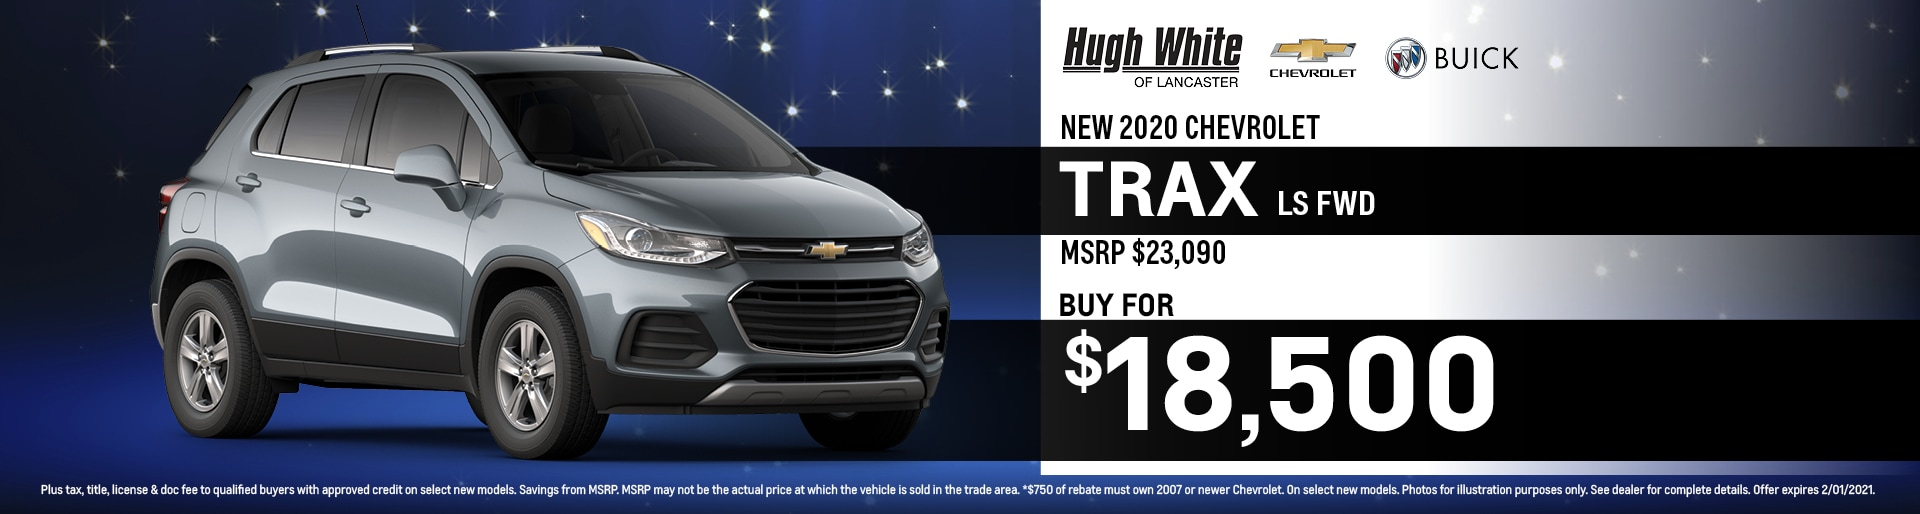 2020 Chevy Trax Special Offer | Hugh White Chevy Buick Lancaster, OH